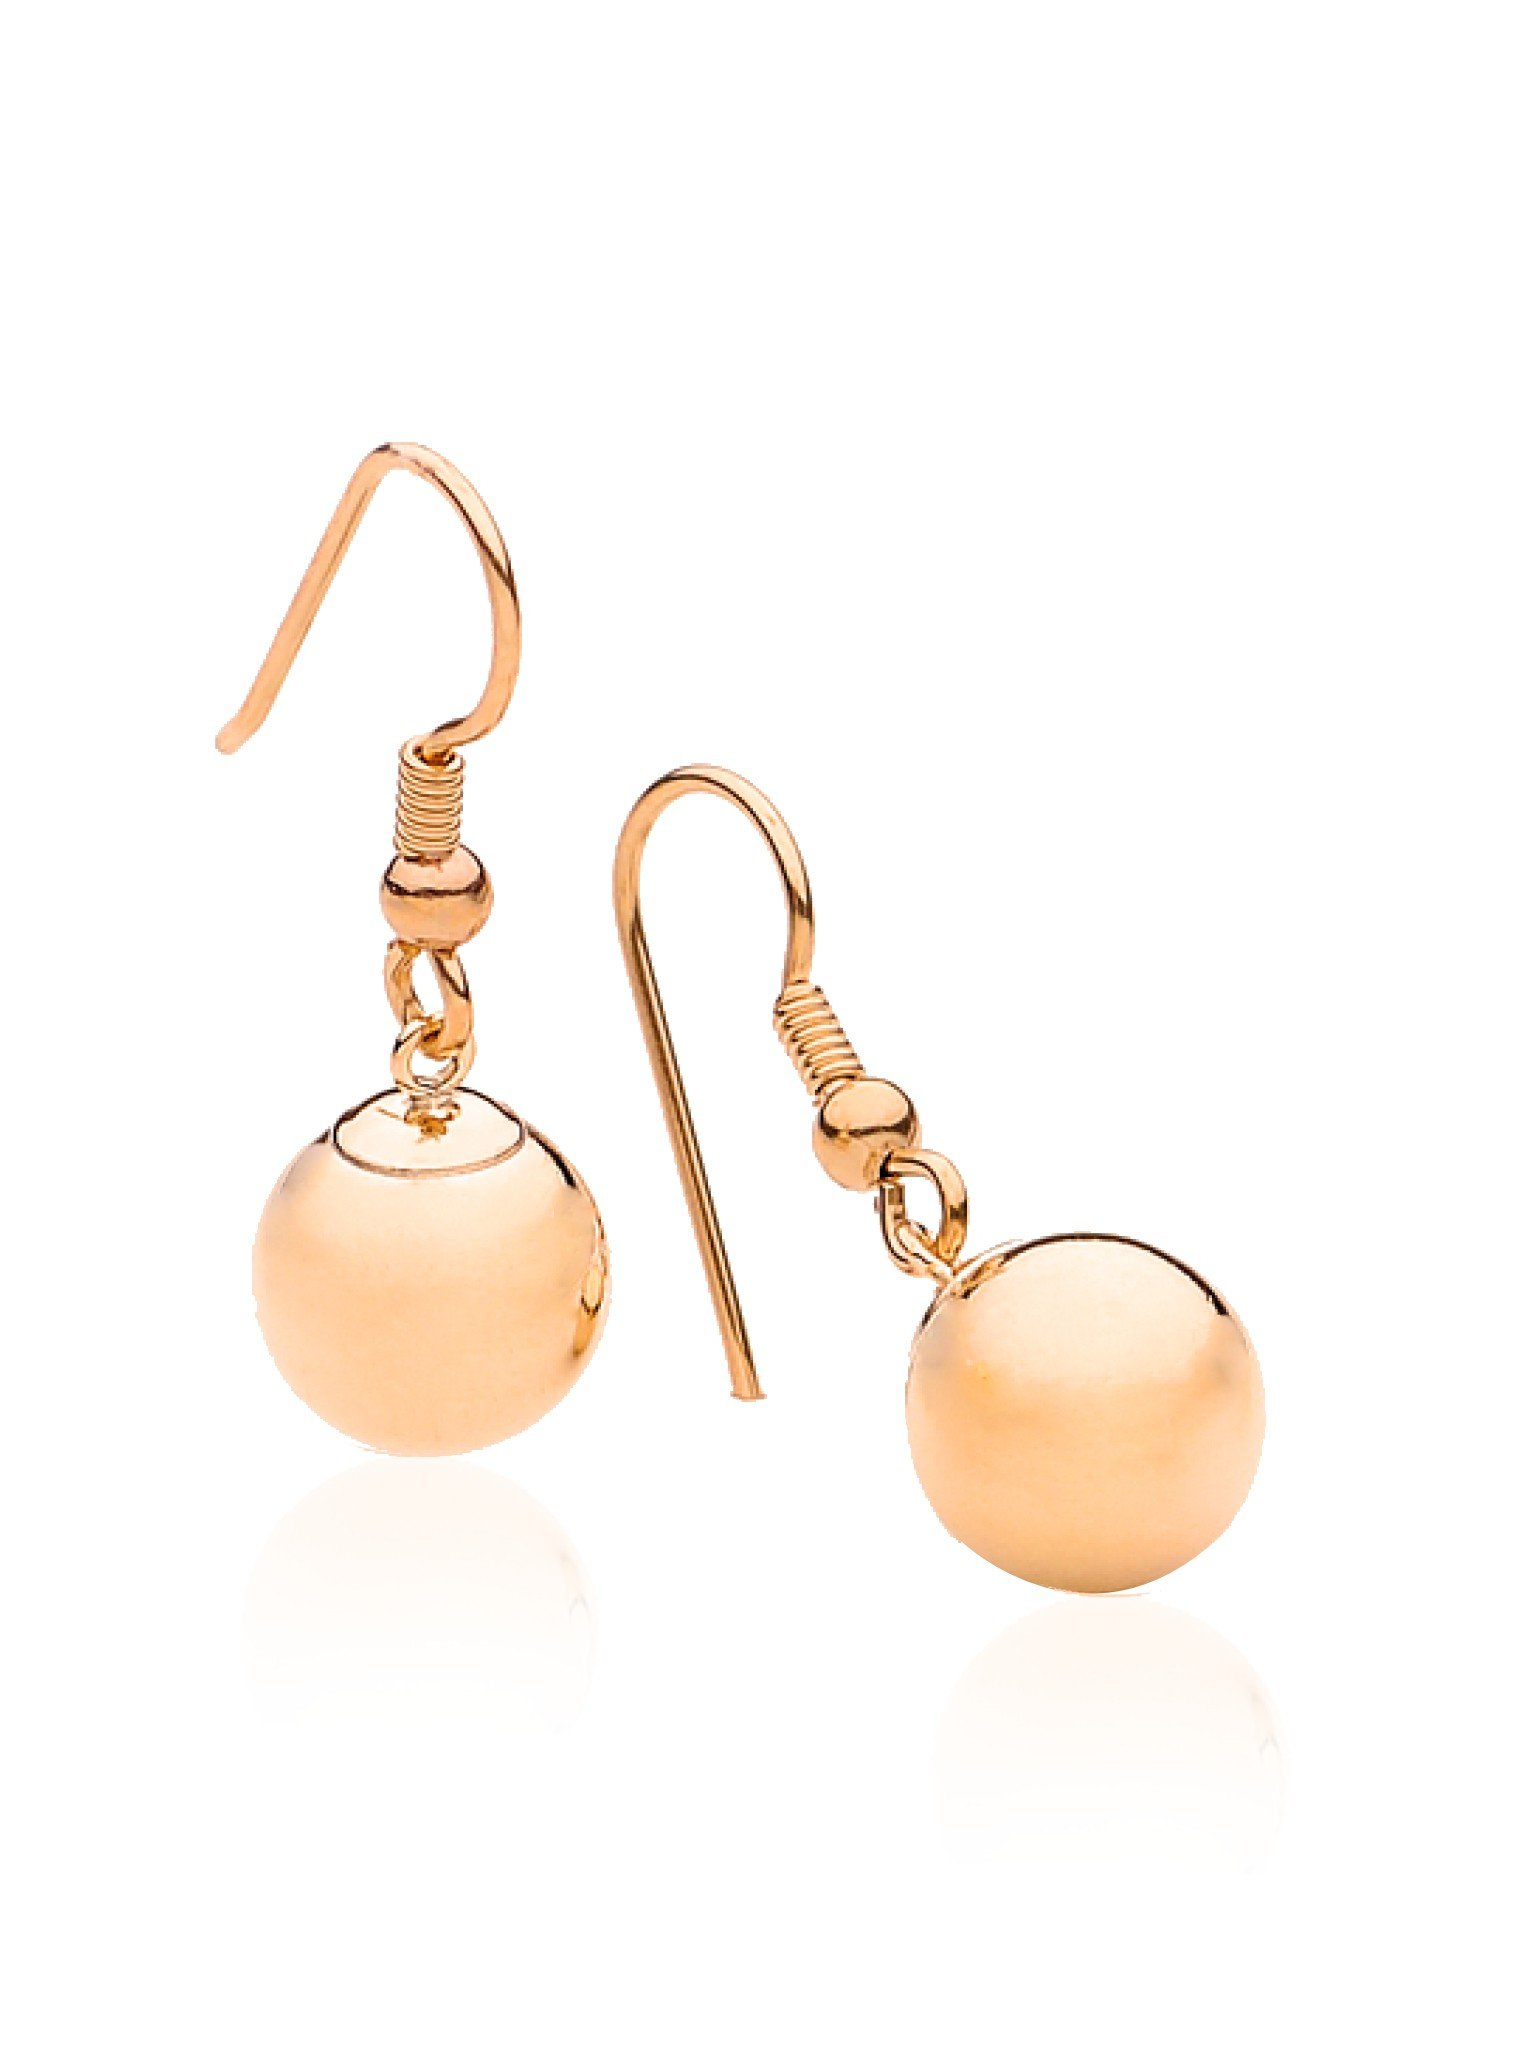 Ball Bead Hook Earrings in Rolled Rose Gold